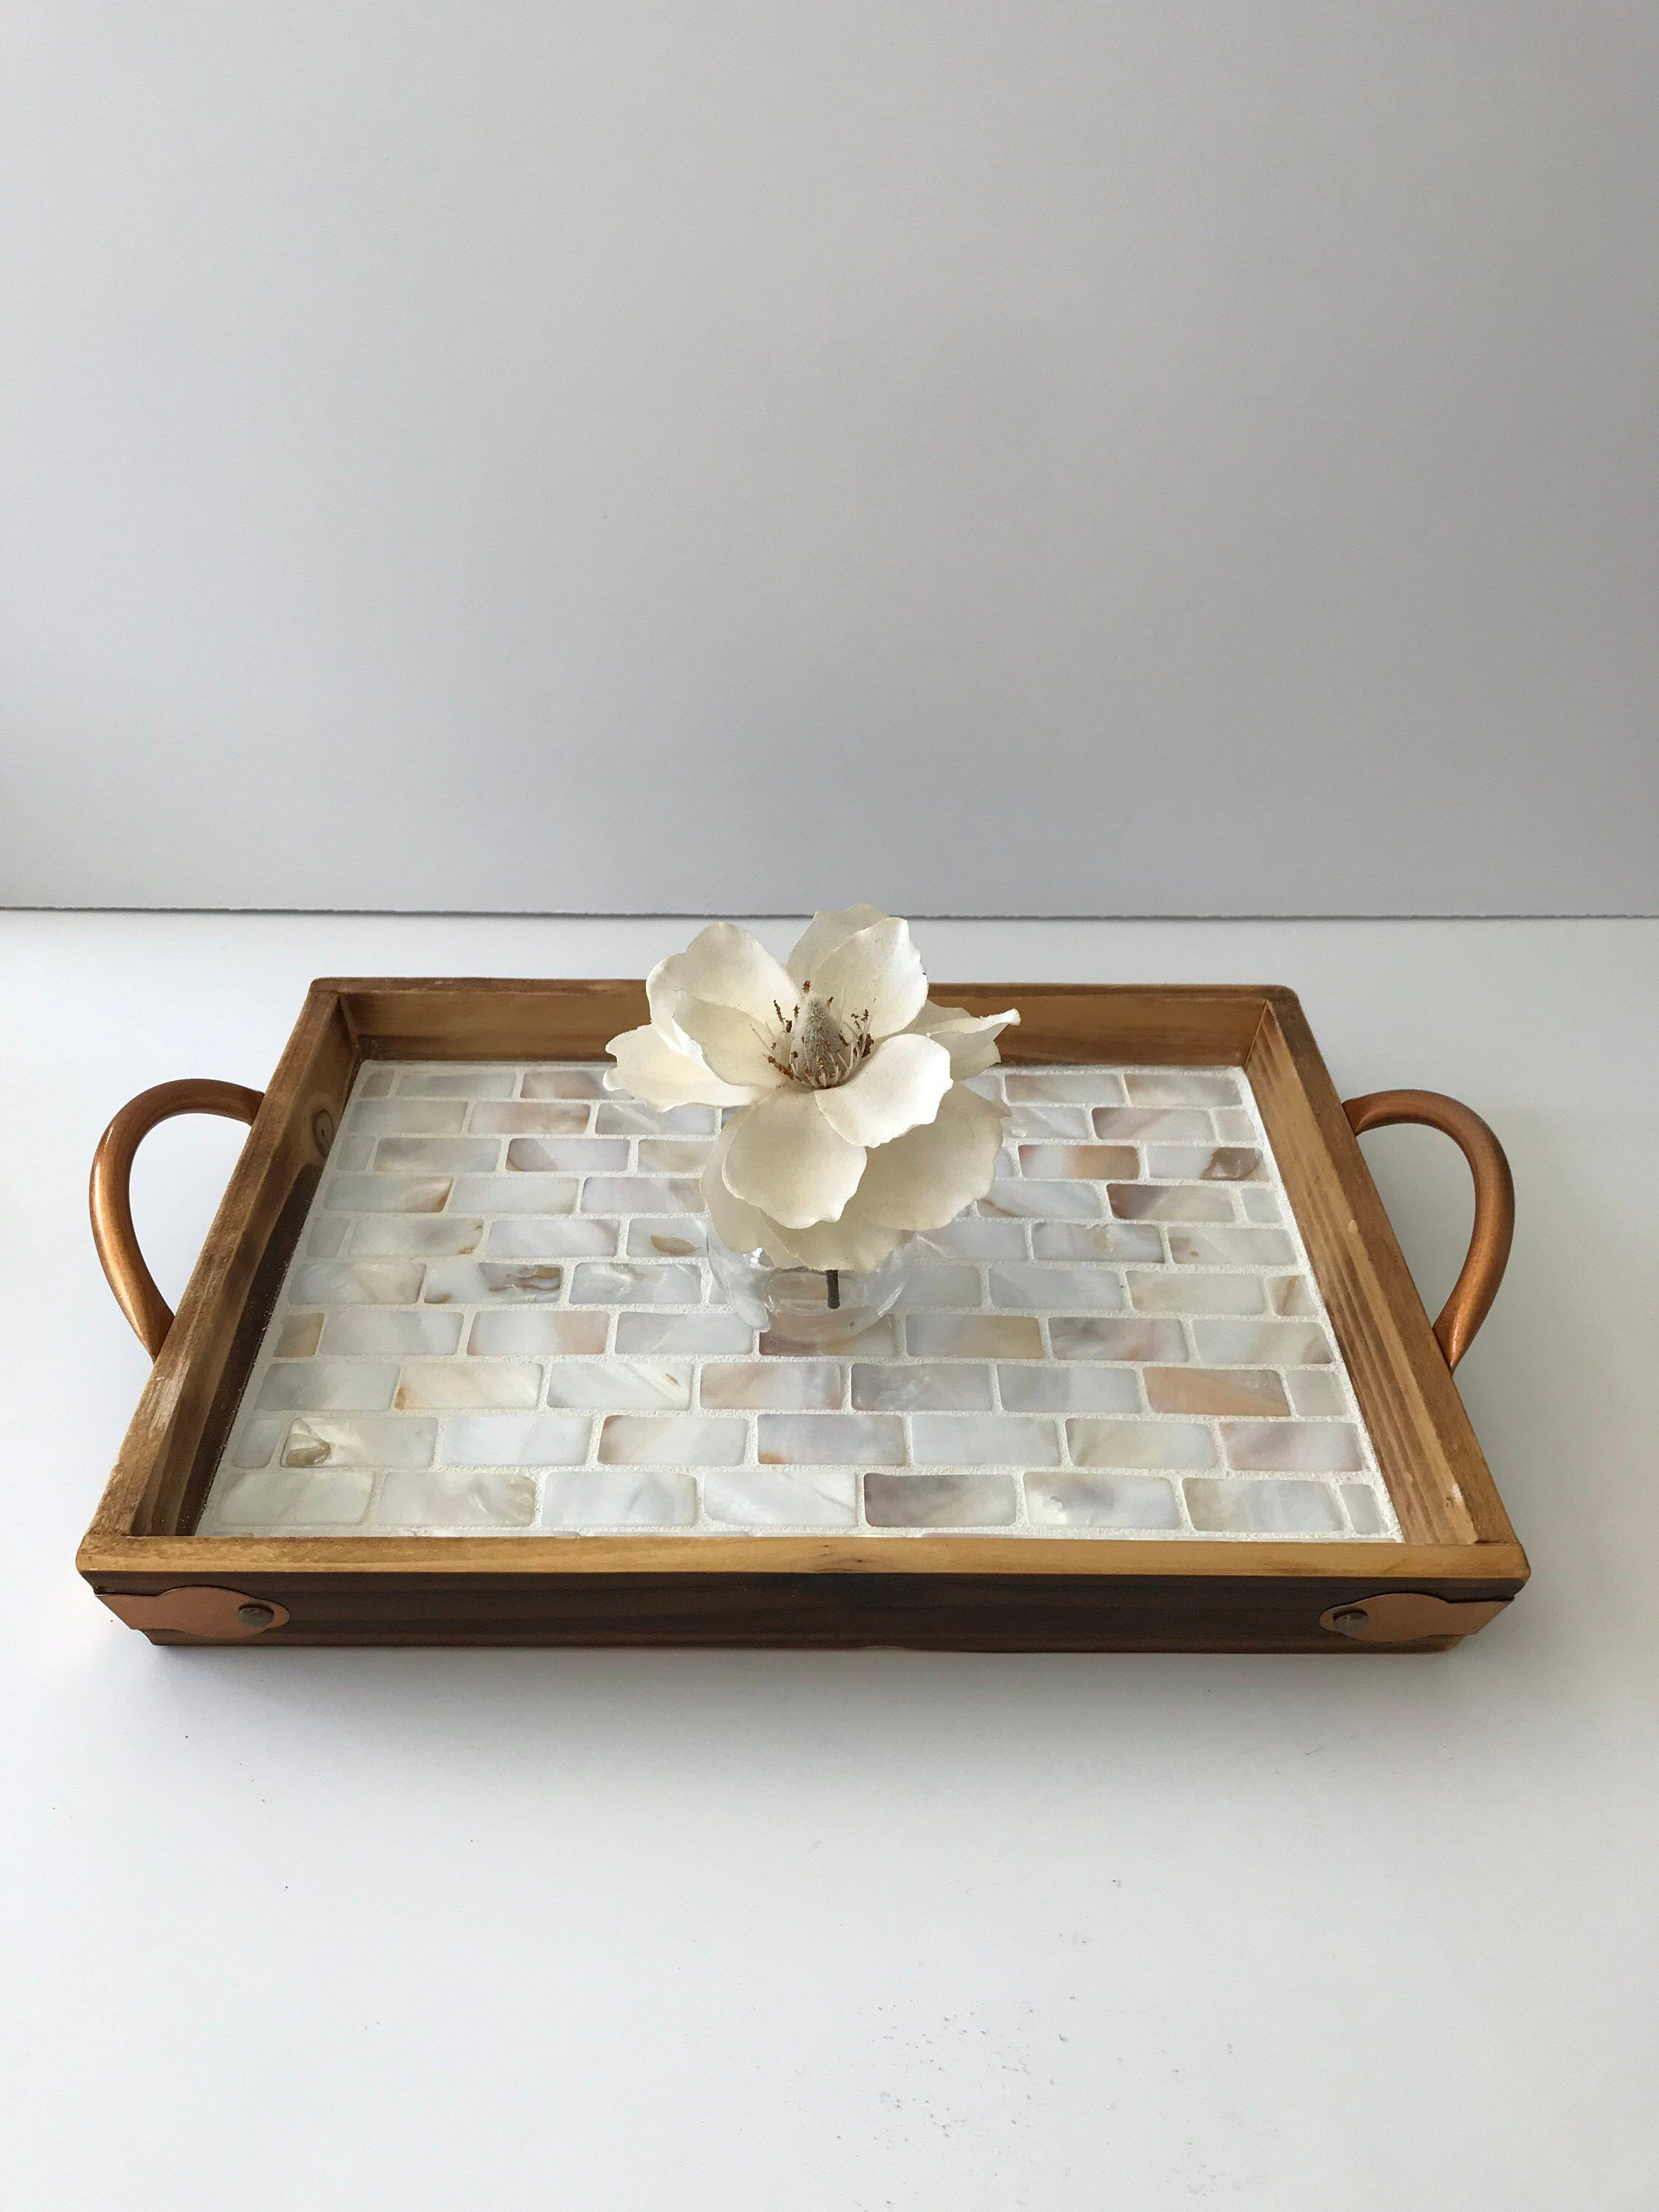 Mother Of Pearl Tray Coffee Table Tray Tile Tray Wooden Etsy House Gifts Wooden Serving Trays Coffee Table Tray [ 3000 x 2250 Pixel ]